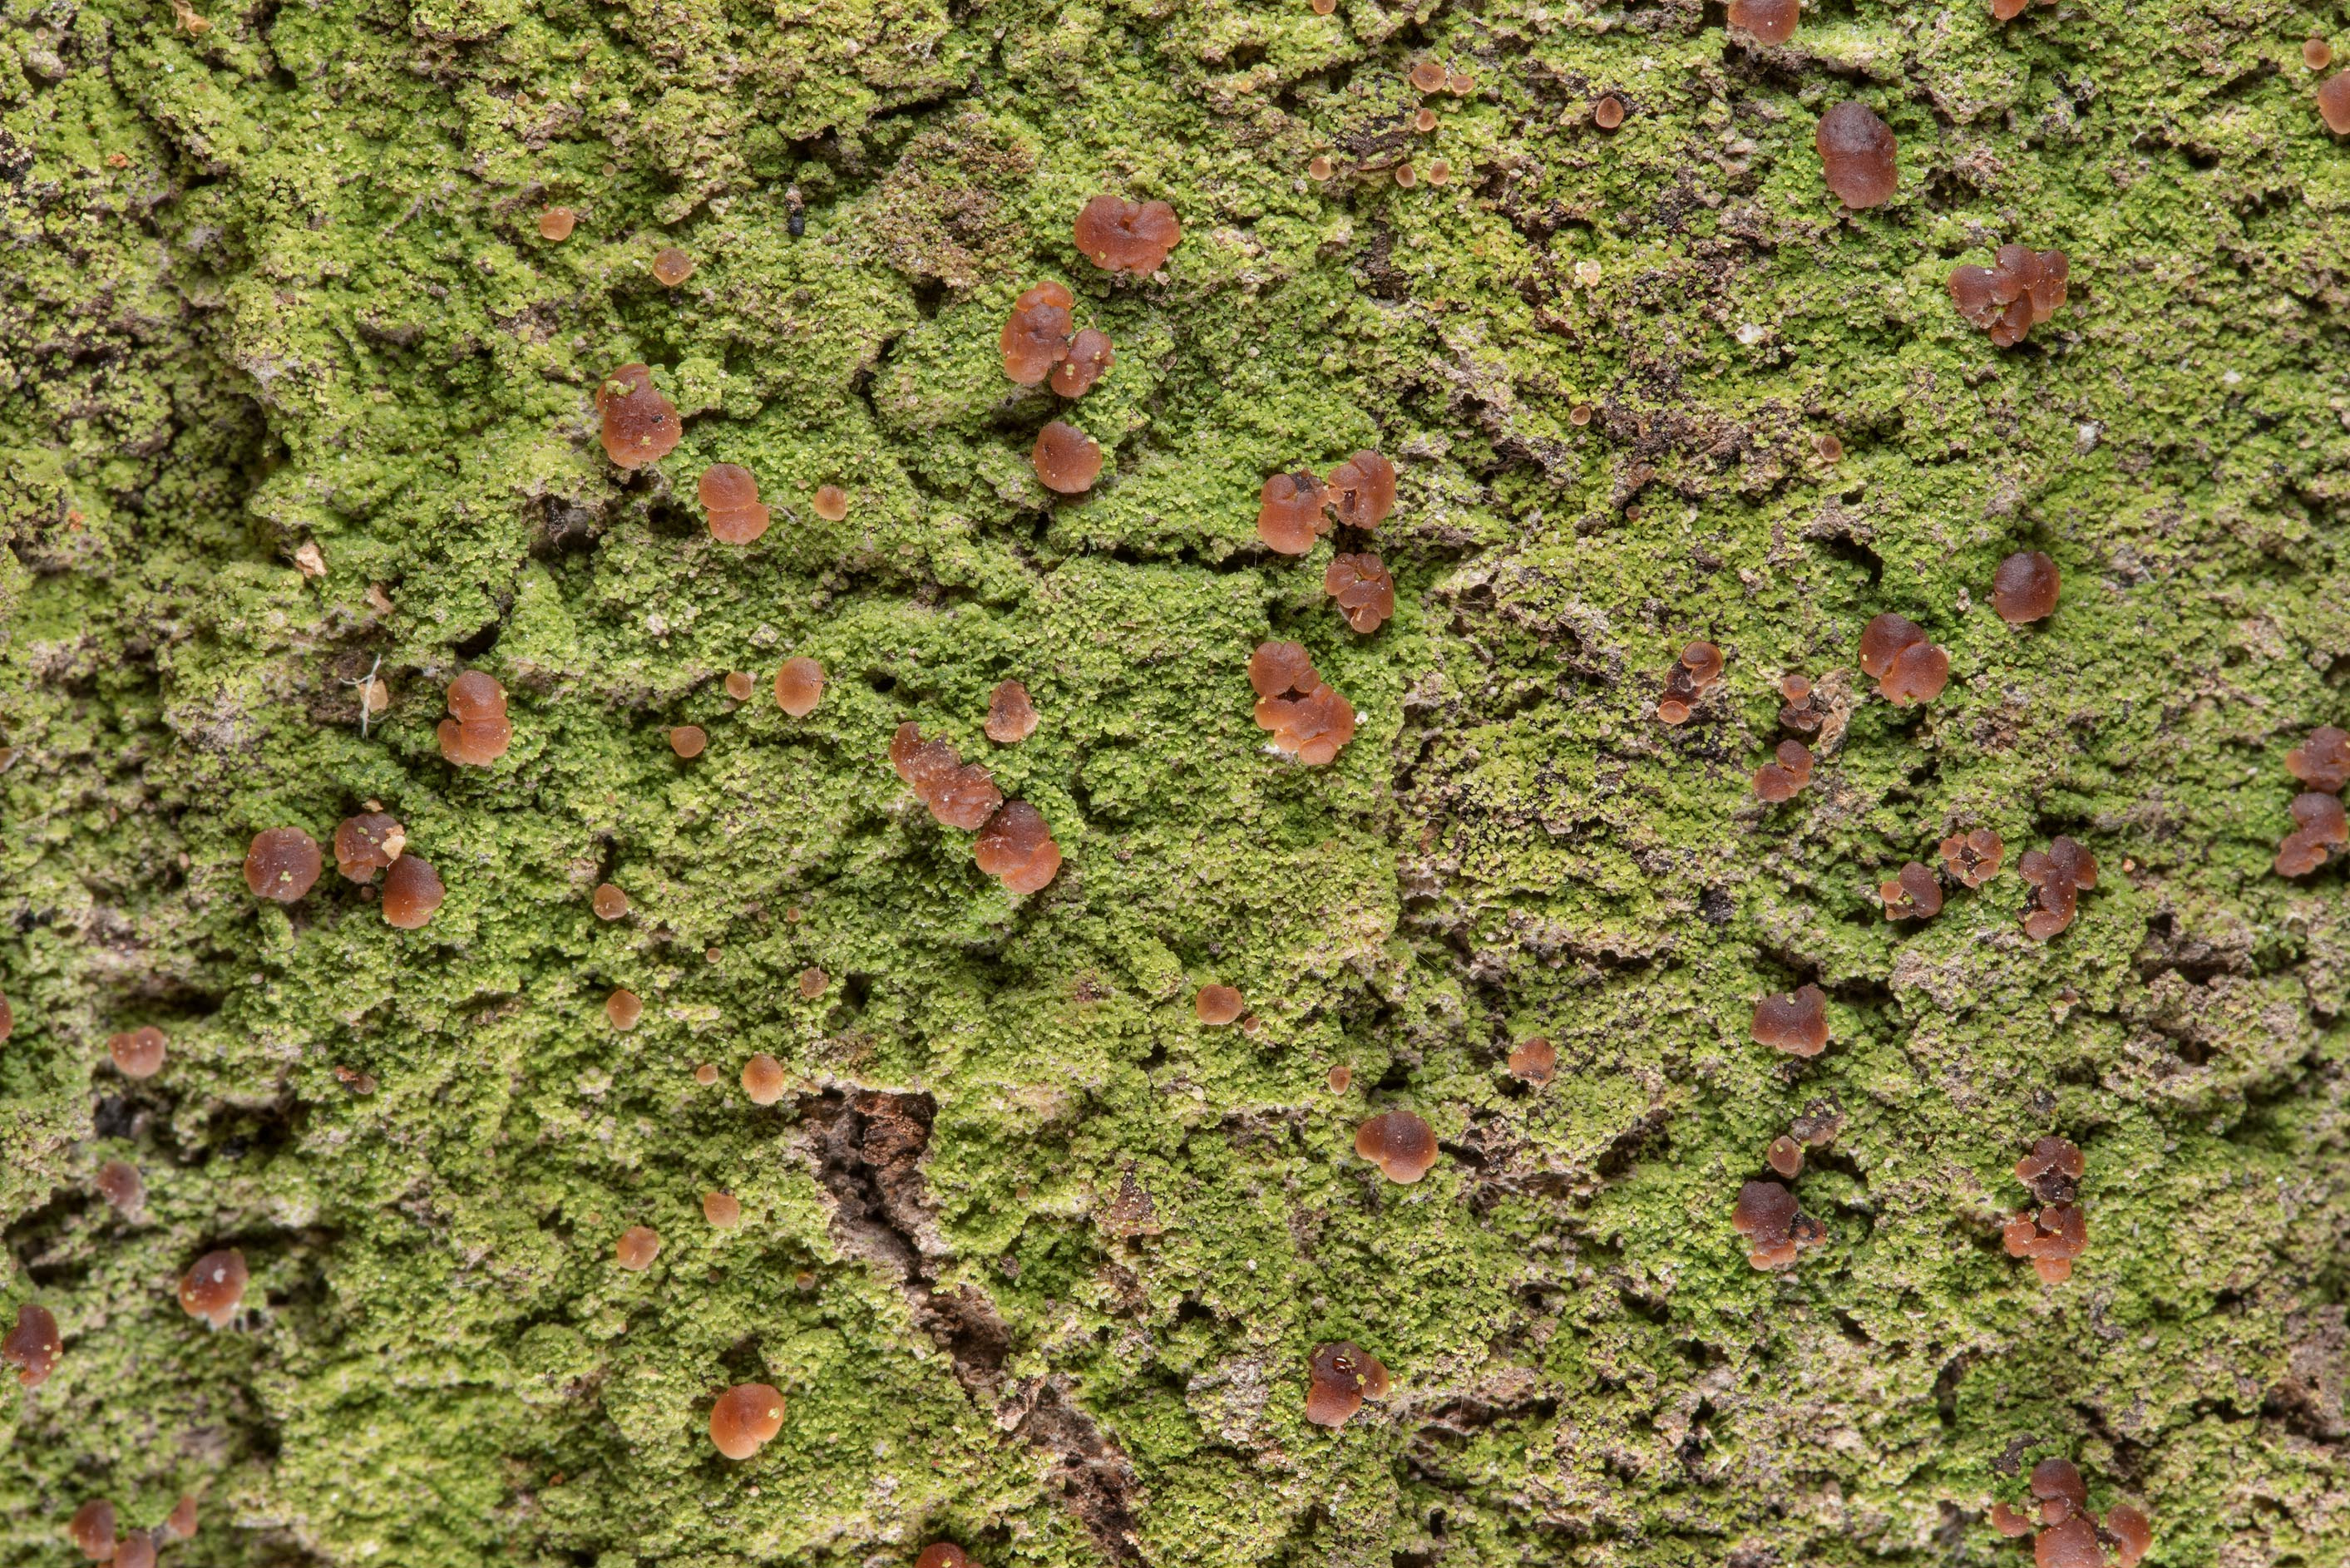 Lichen Phyllopsora confusa on a tree near the...National Forest. Shepherd, Texas